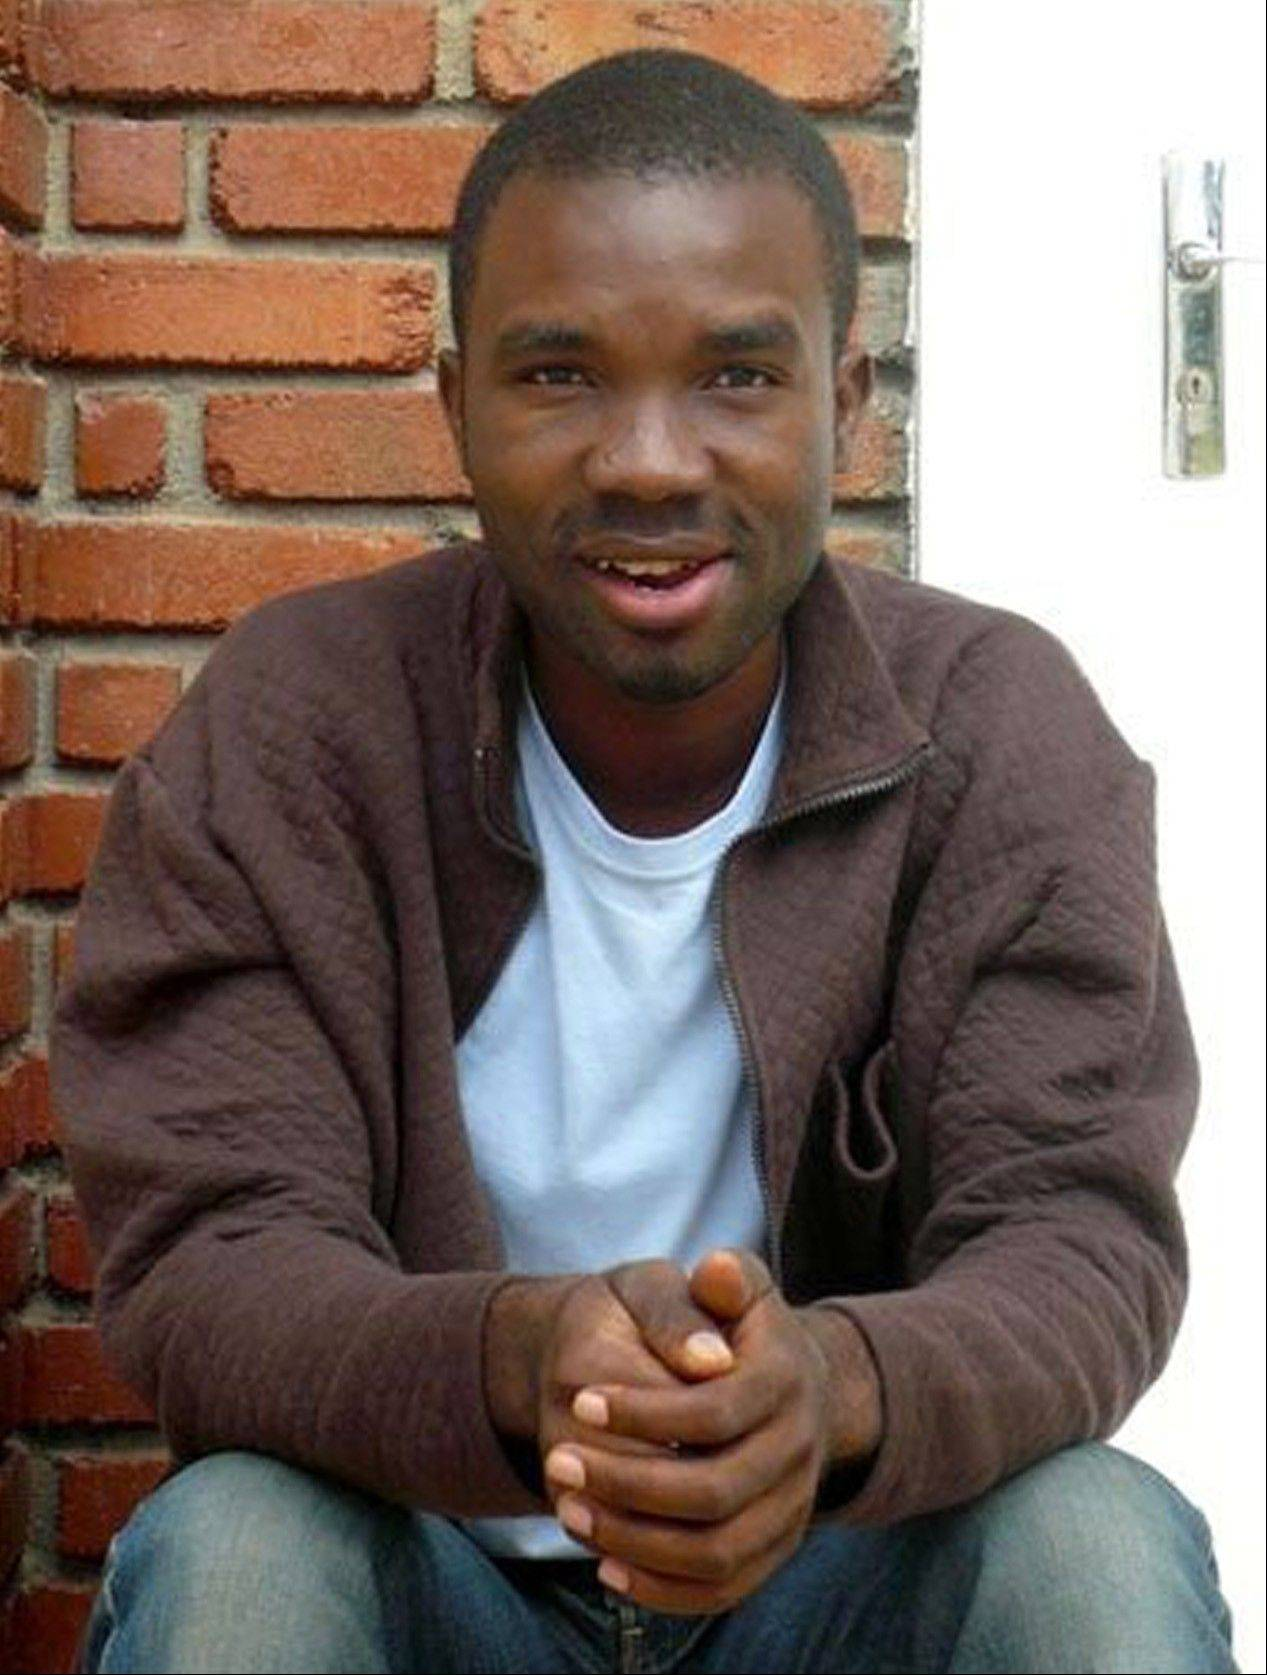 Eric Ohena Lembembe was tortured and killed in Camaroon this year just weeks after issuing a public warning about the threat posed by �anti-gay thugs.� Lembembe was the most prominent African gay-rights campaigner to be killed since 2011, when the victims included South African lesbian activist Noxolo Nogwaza and Uganda�s David Kato.